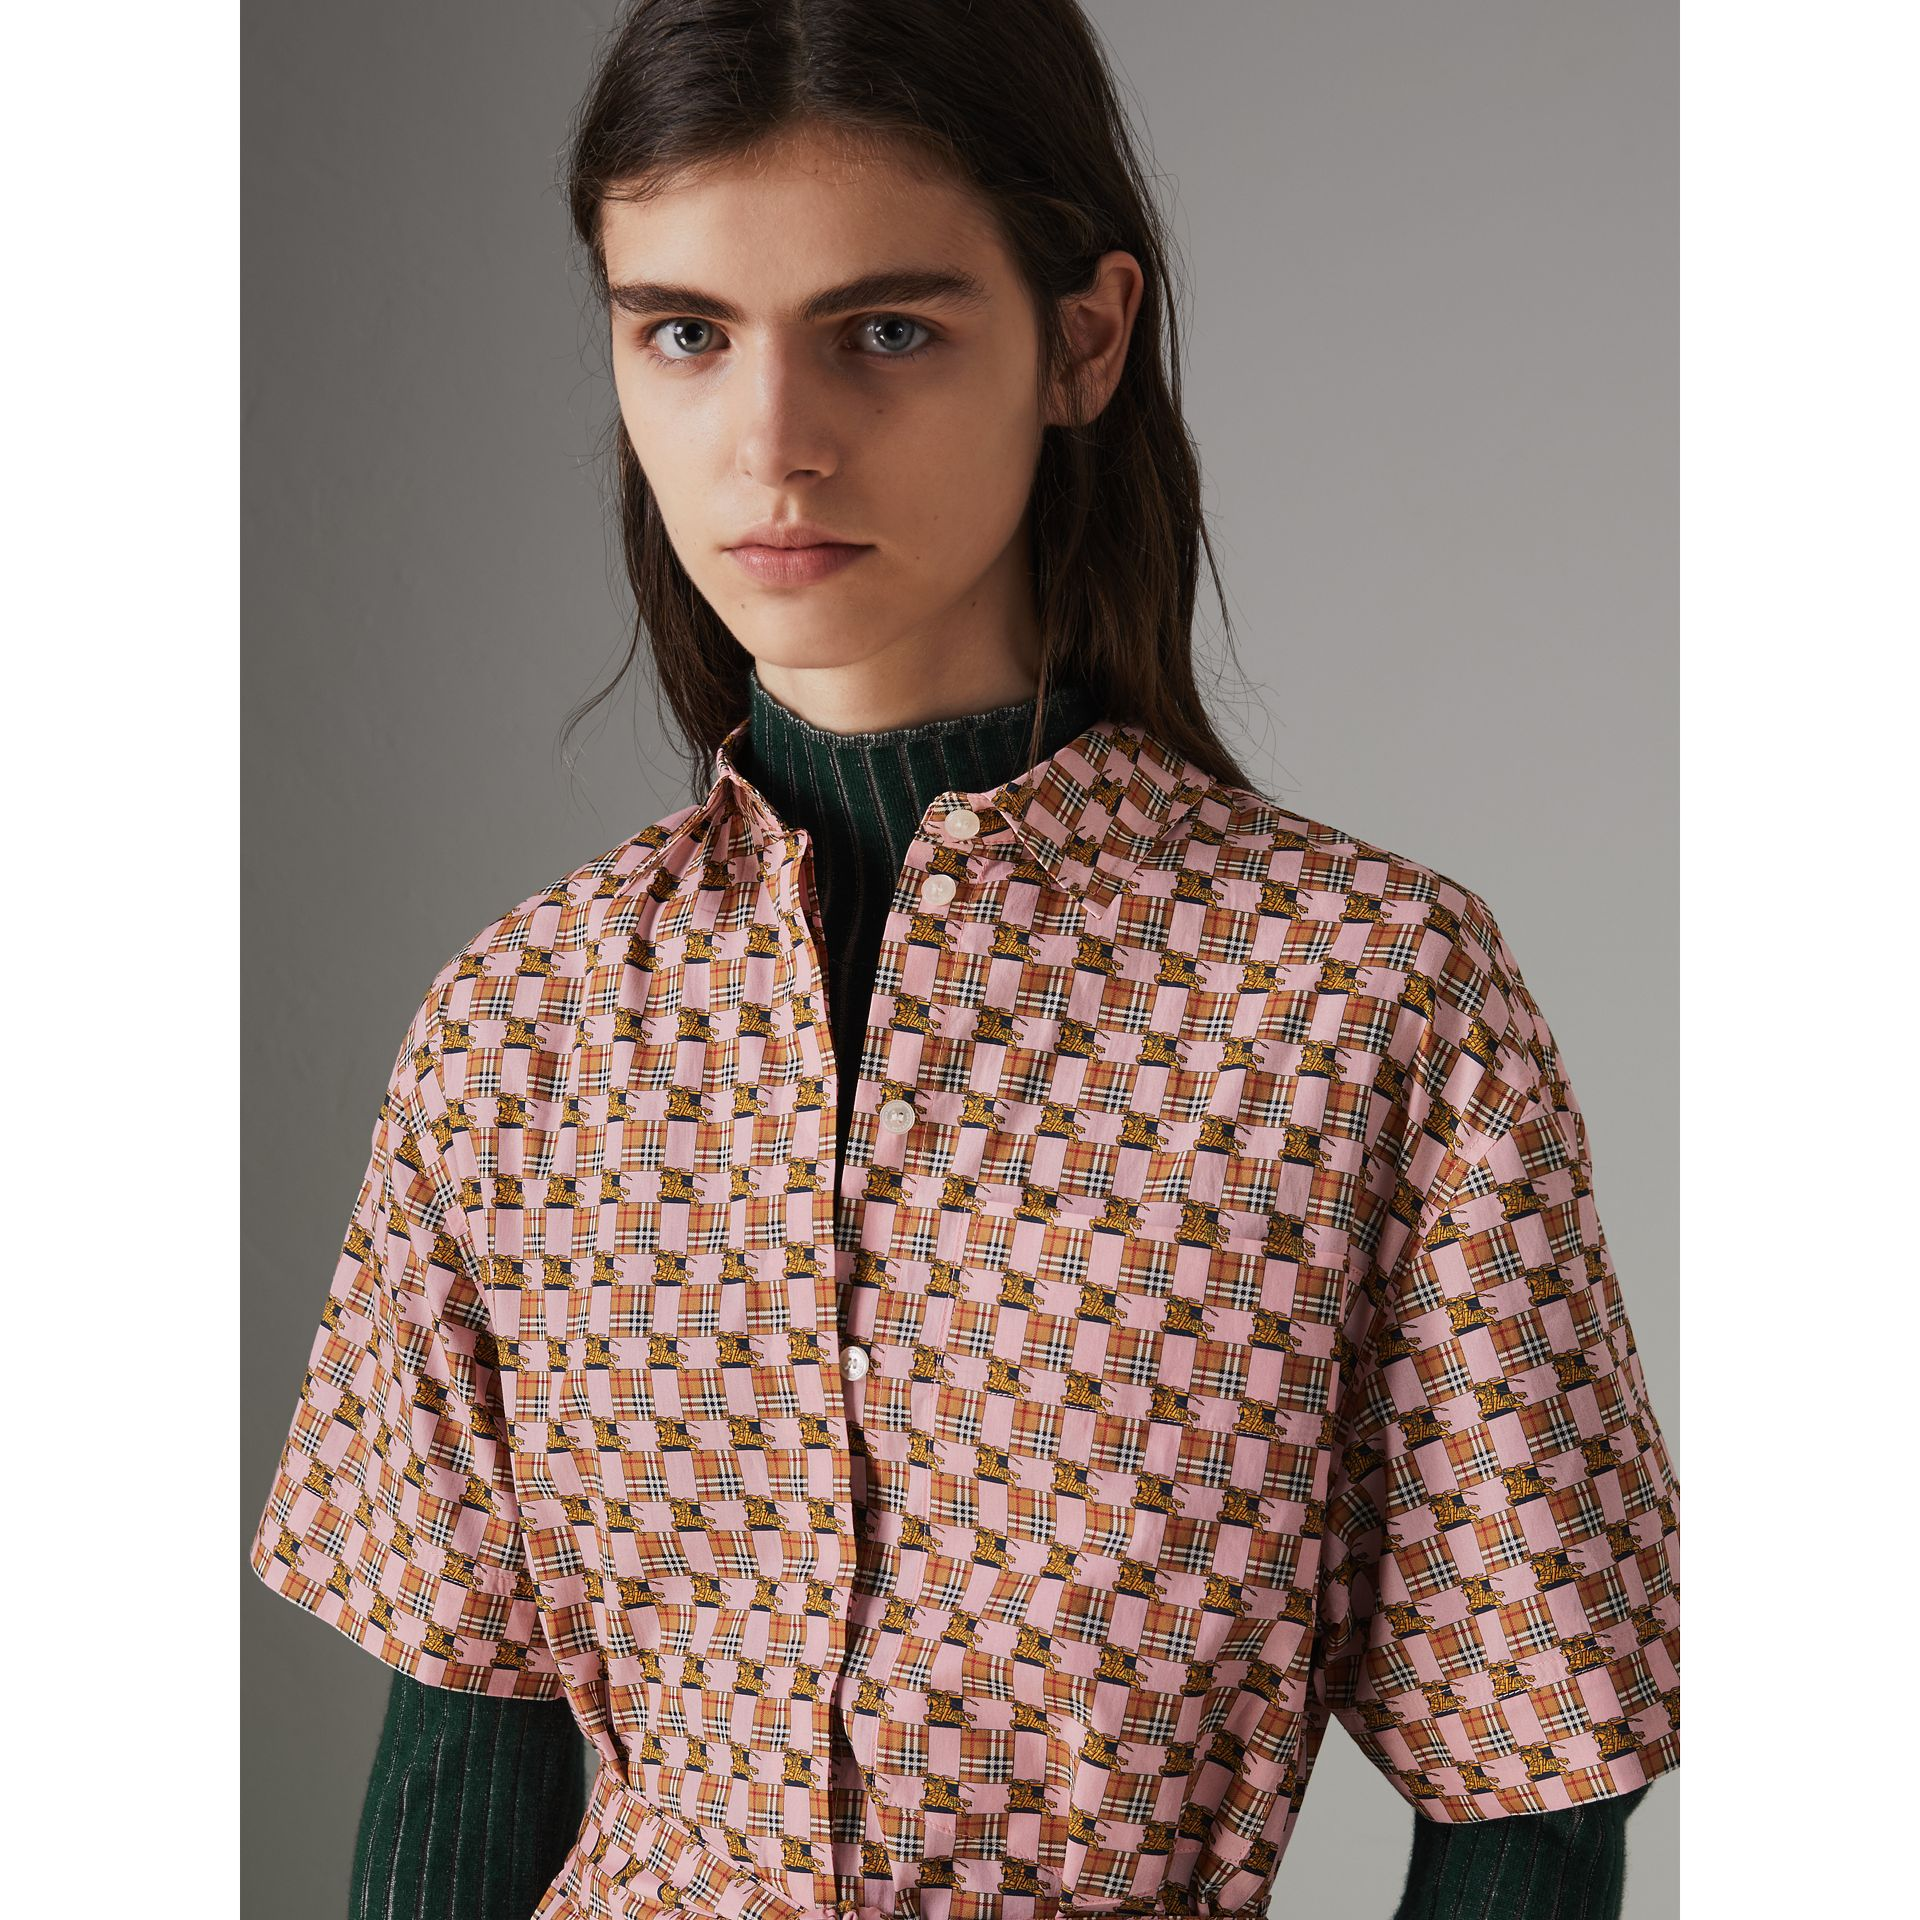 Tiled Archive Print Cotton Shirt Dress in Pink - Women | Burberry - gallery image 1